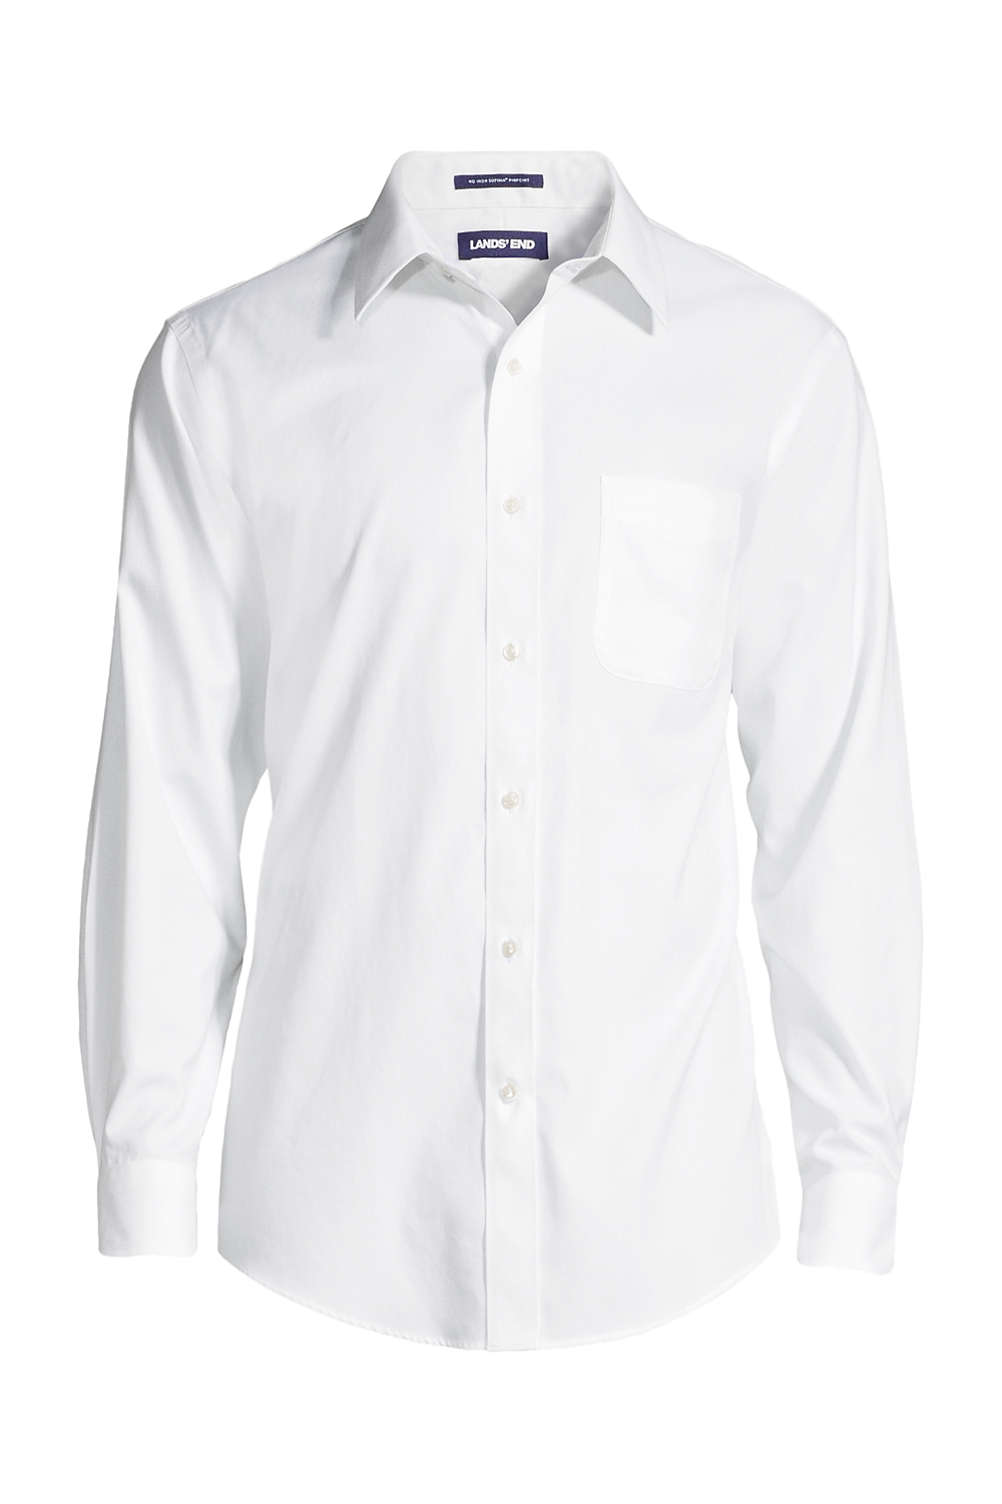 bfe5ed9cb553 Men's Big & Tall Traditional Fit Solid No Iron Supima Pinpoint Straight  Collar Dress Shirt. 4.3. Rated 4.27 out of ...